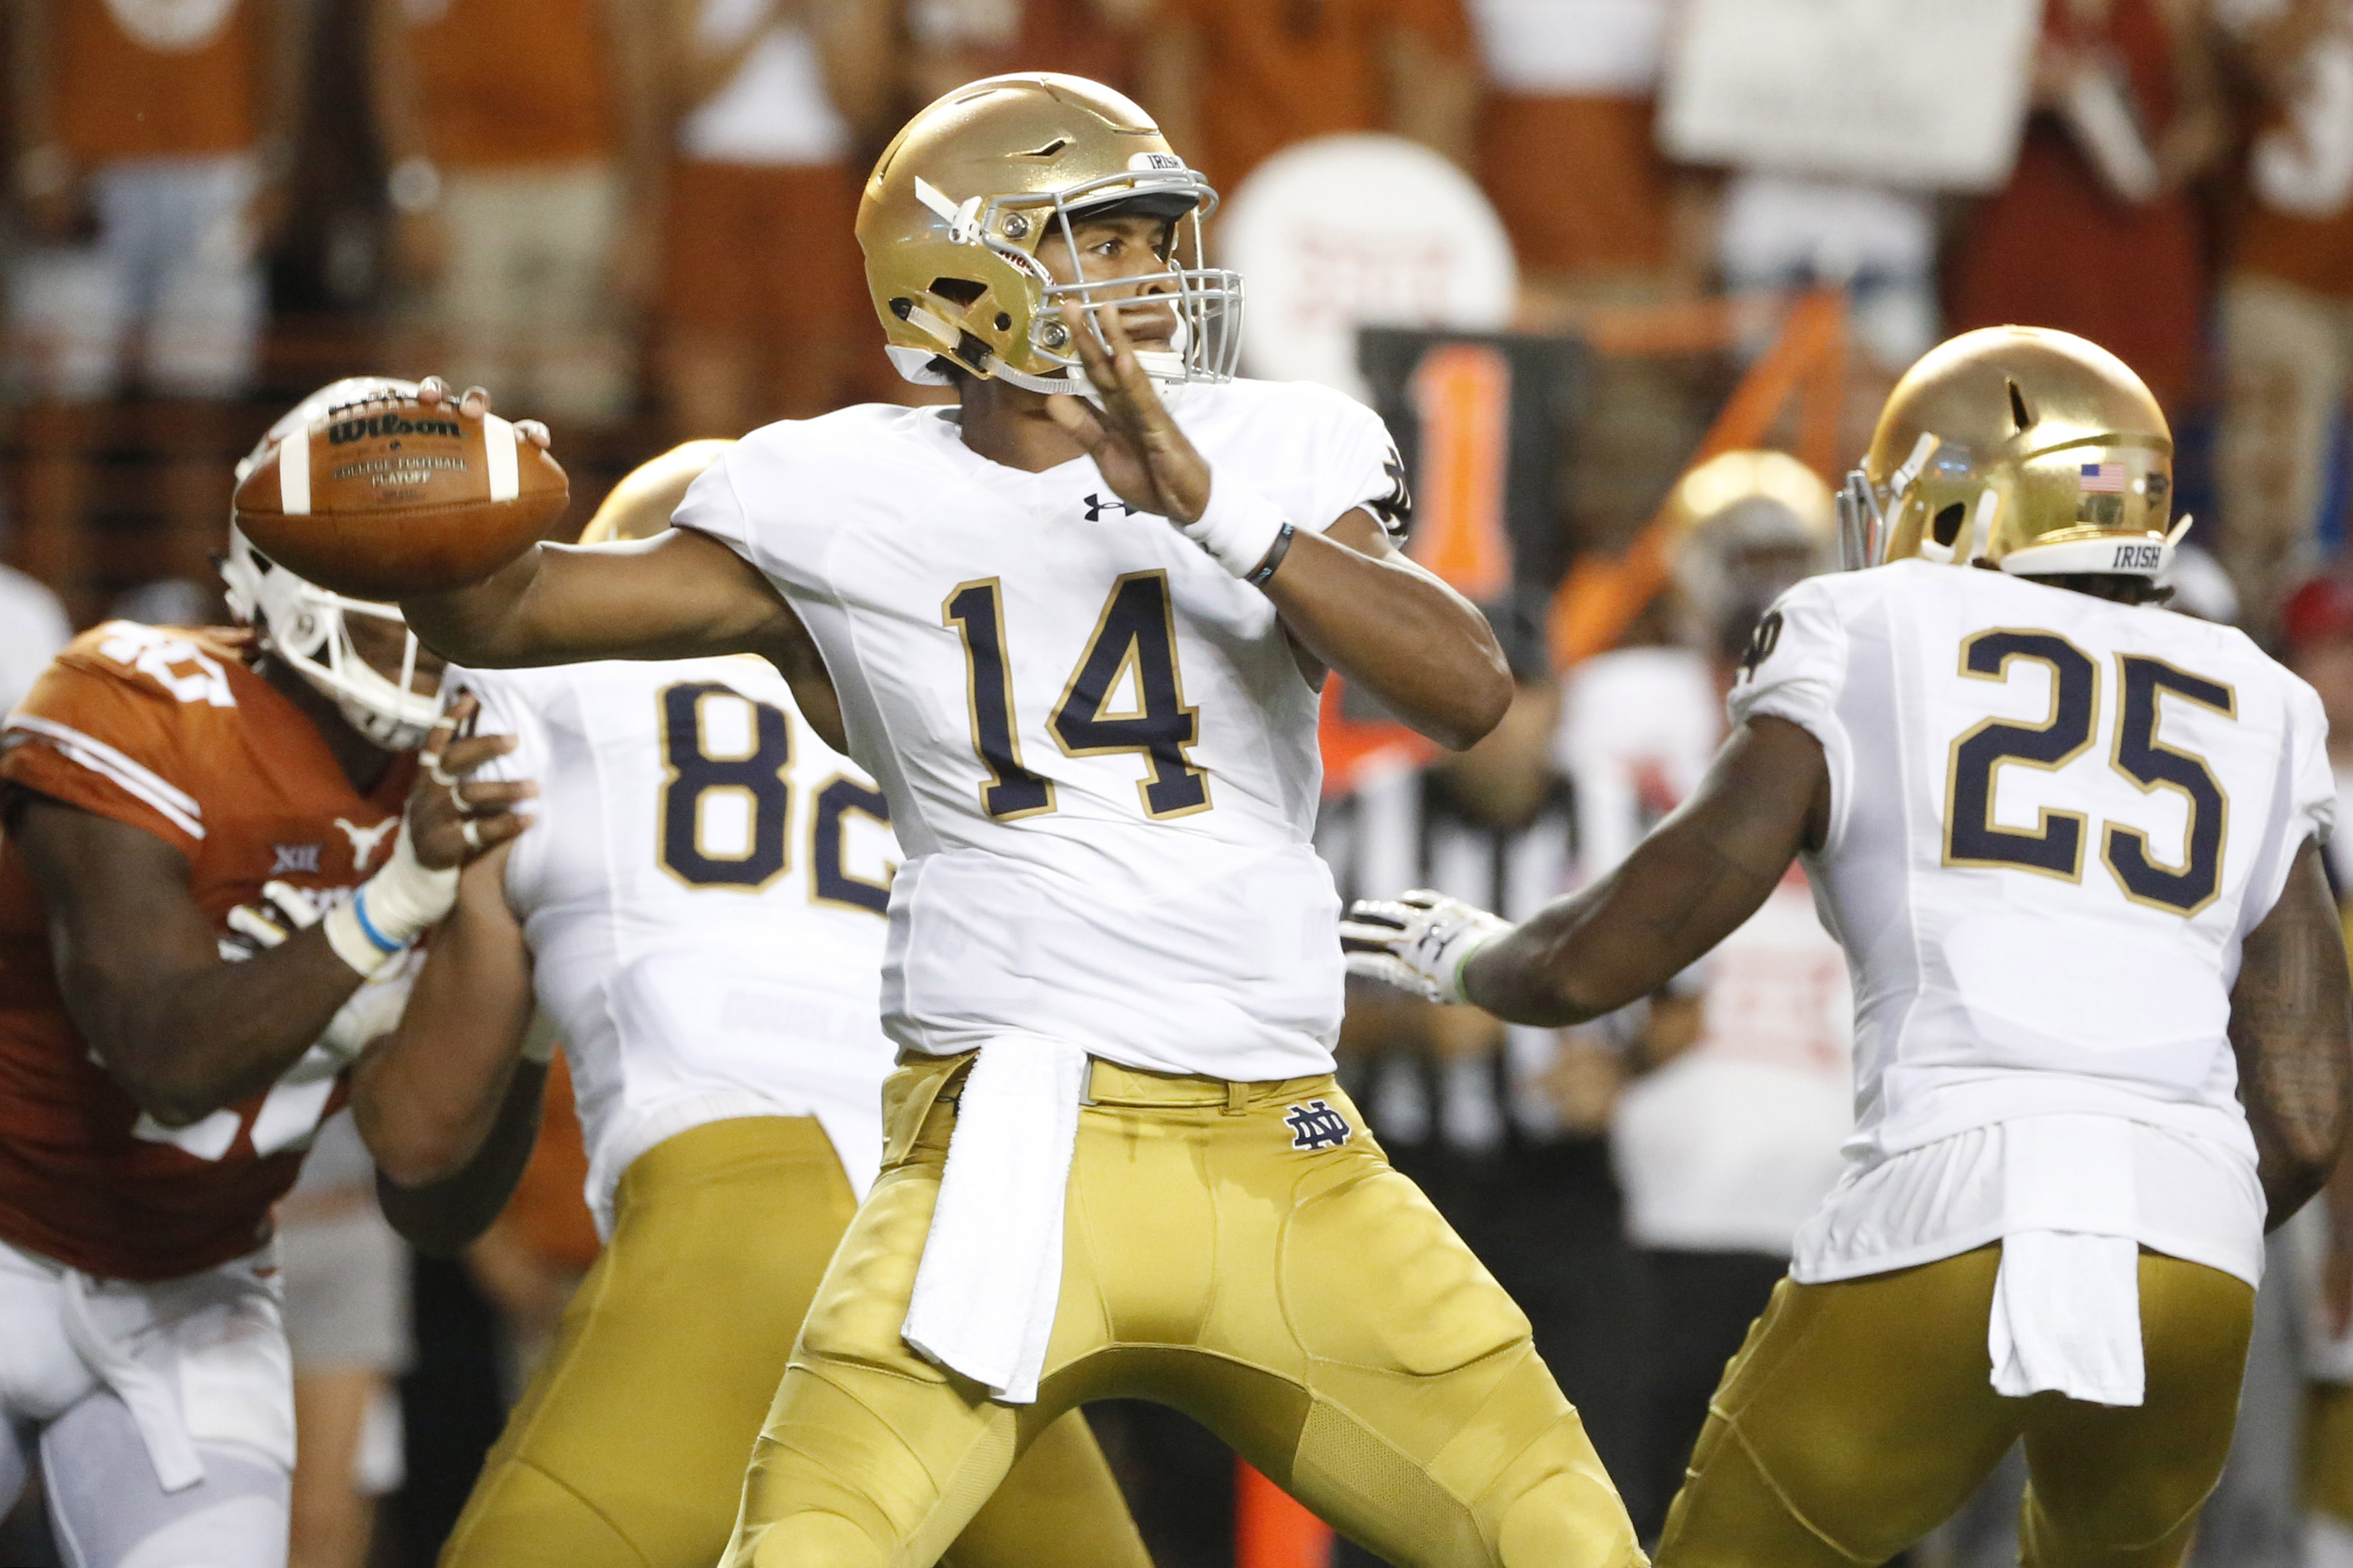 Sep 4, 2016; Austin, TX, USA; Notre Dame Fighting Irish quarterback DeShone Kizer (14) throws the ball against the Texas Longhorns at Darrell K Royal-Texas Memorial Stadium. Mandatory Credit: Soobum Im-USA TODAY Sports